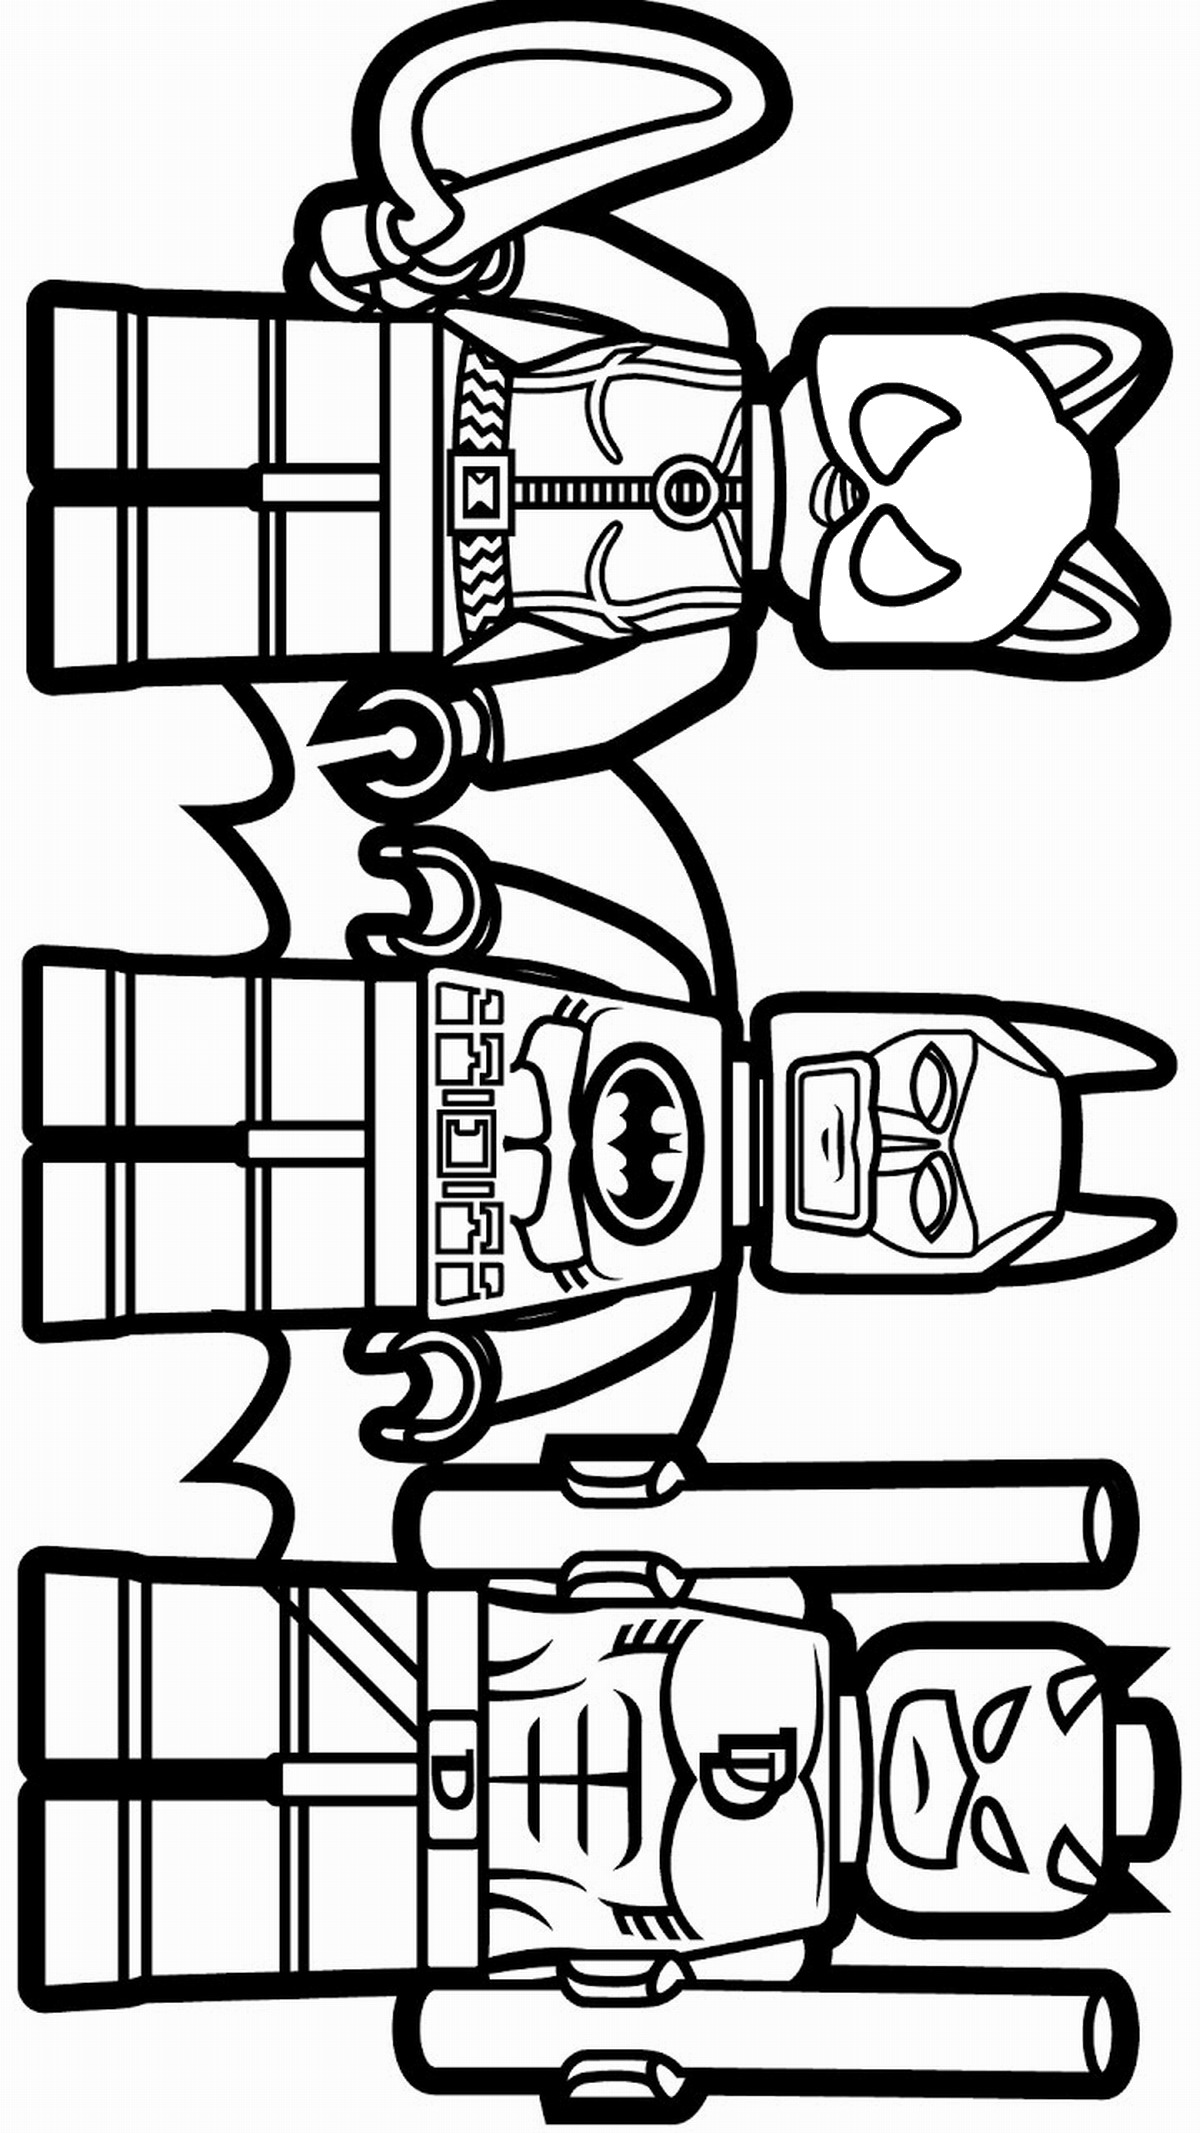 lego coloring sheets free printable lego coloring pages for kids cool2bkids sheets lego coloring